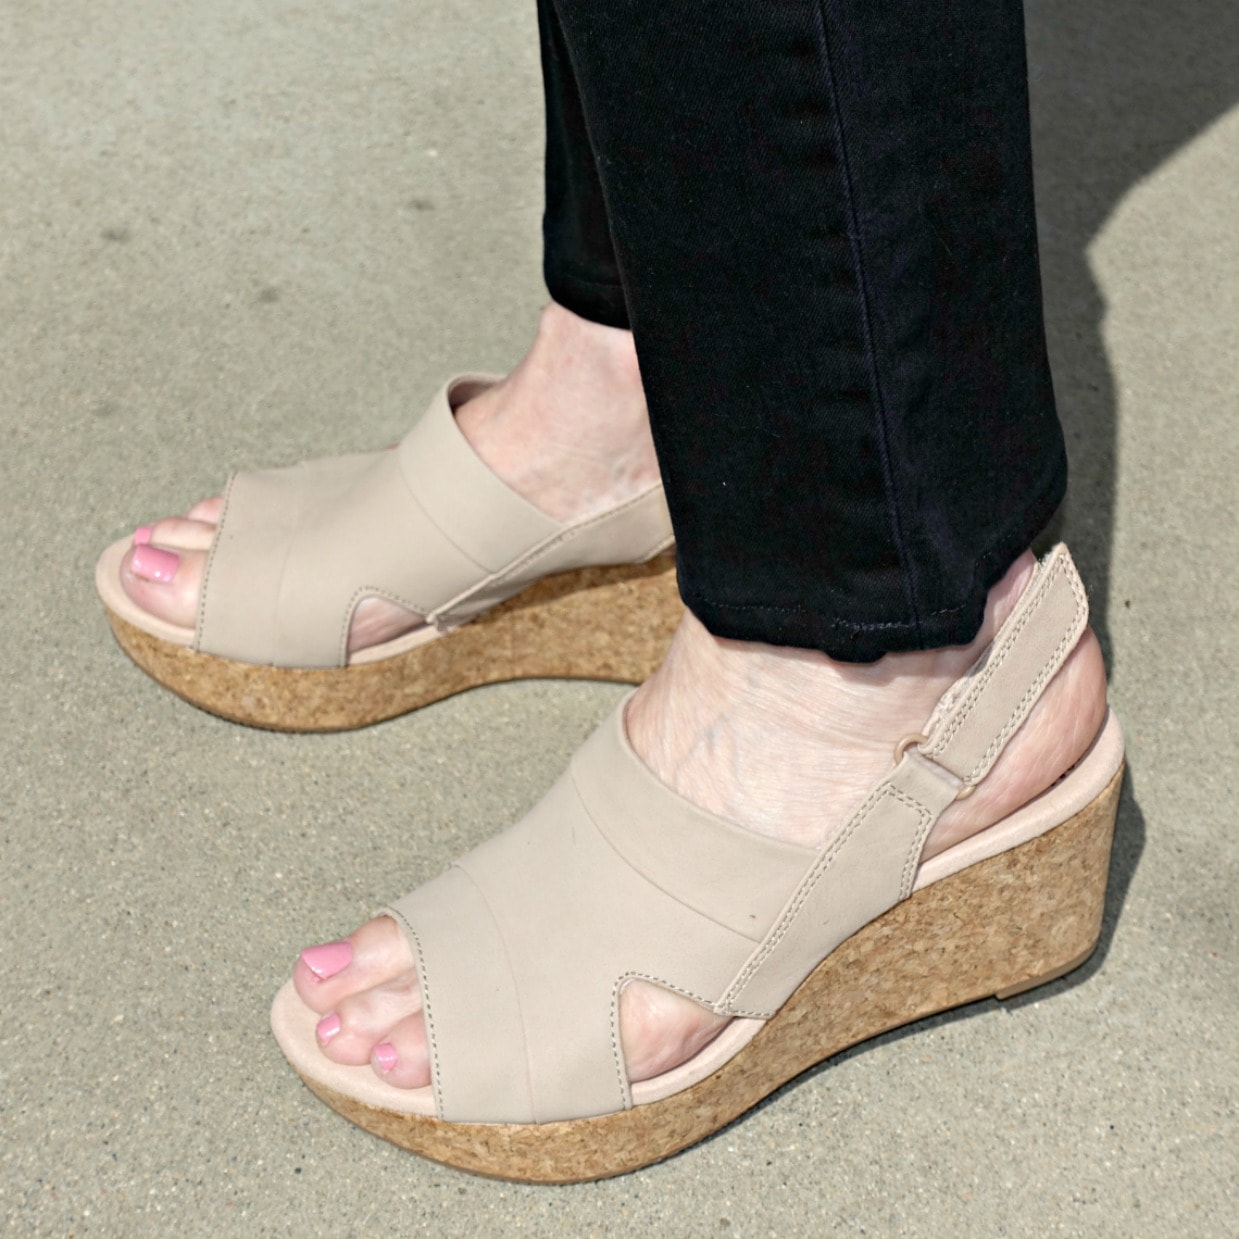 side view of Clarks wedge showing adjustable ankle strap